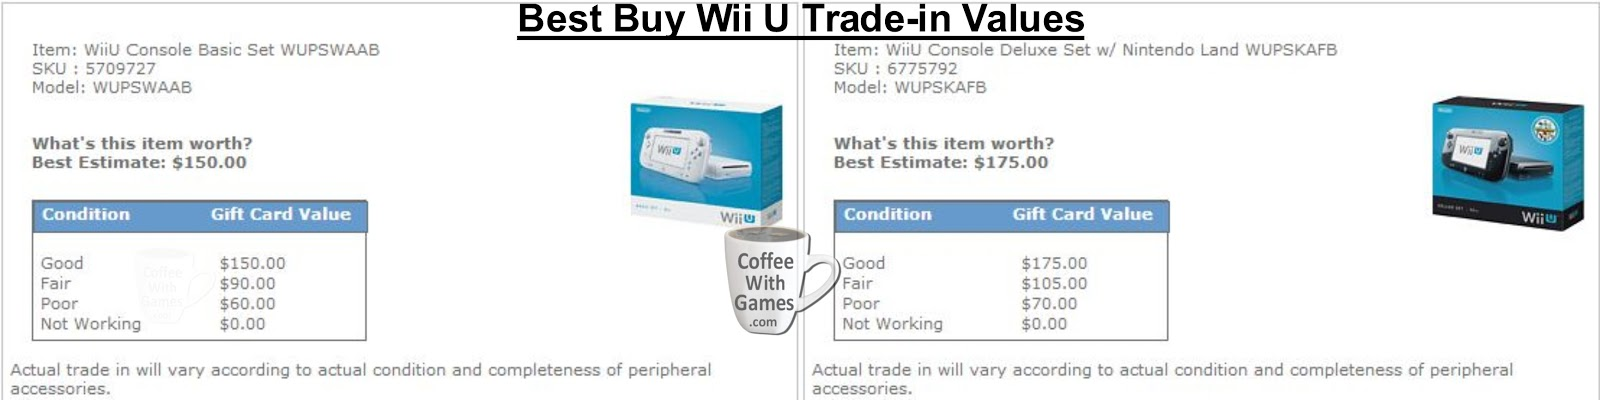 Sep 18,  · The trade-in value drops significantly when it comes to the original Xbox One, which is worth $ off. But, it's still better than a 3DS XL, Wii U or Vita, which all carry the same value of.